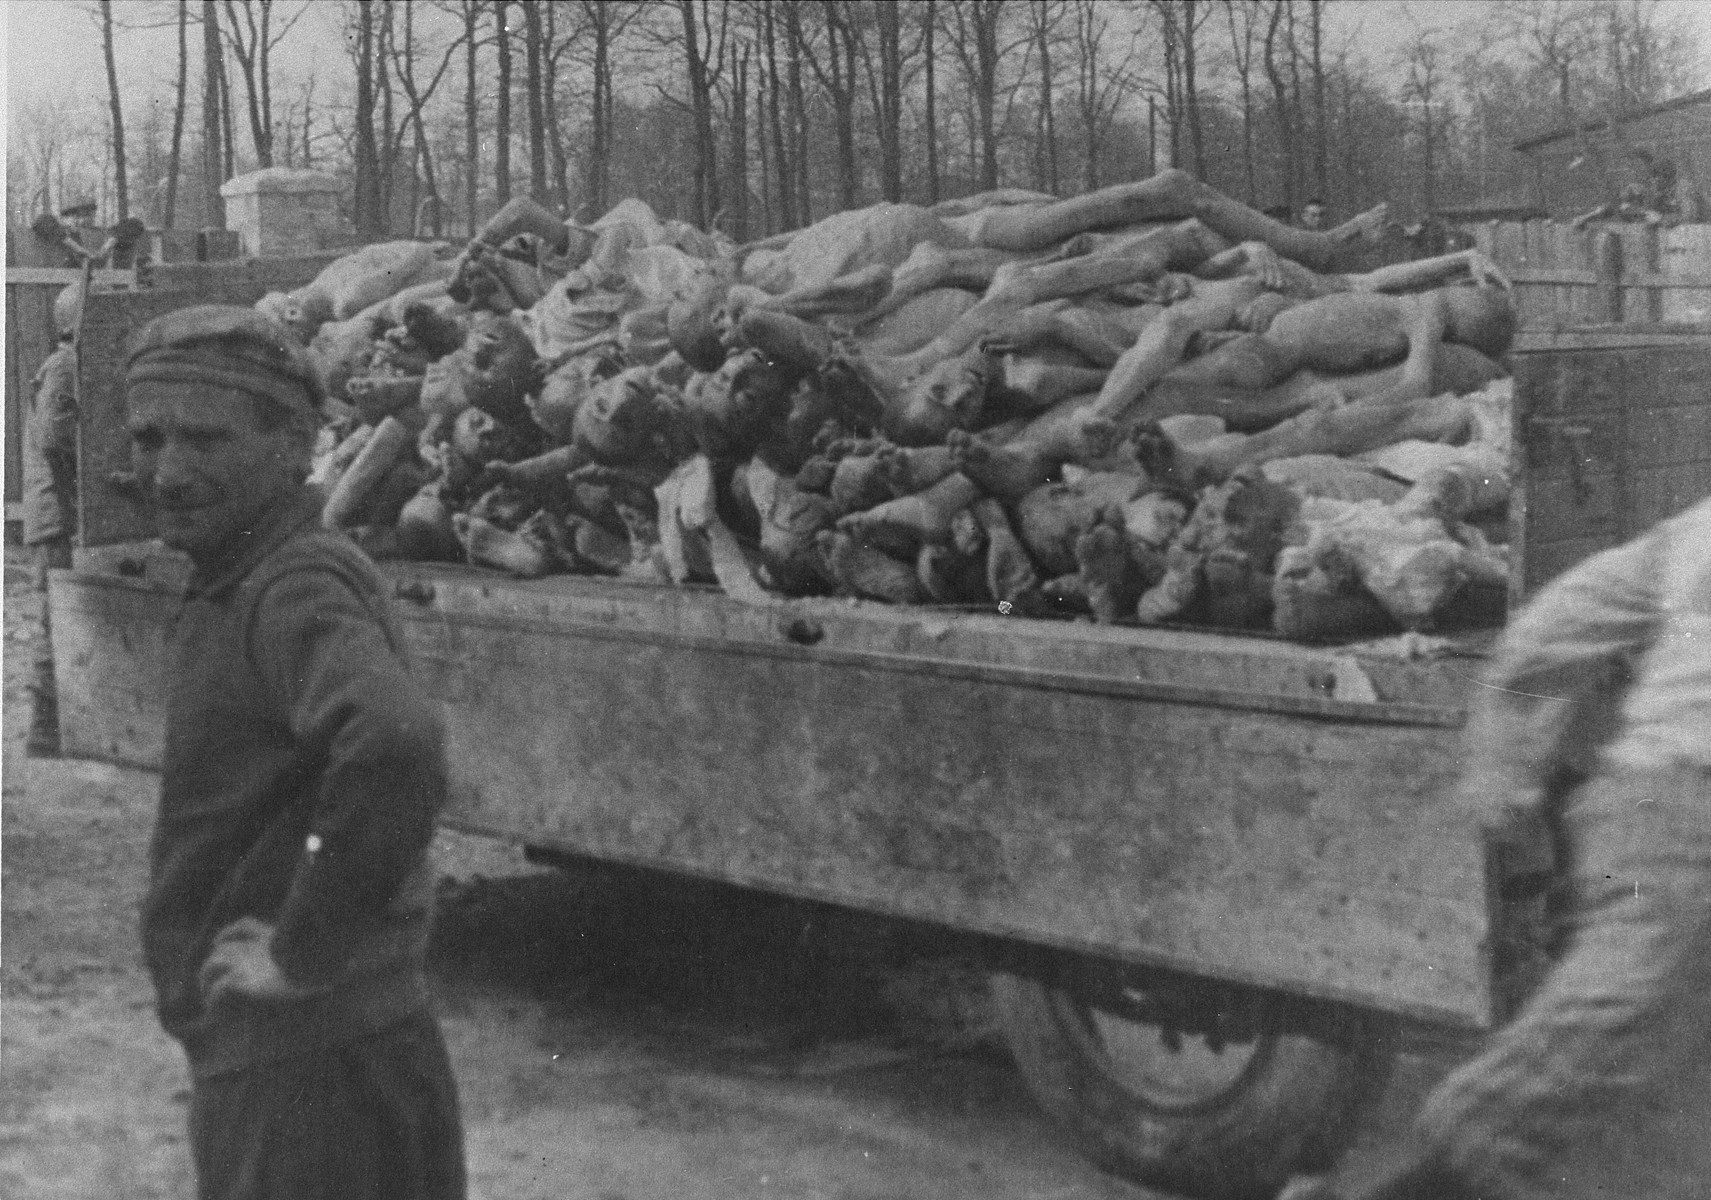 A wagon is piled high with the bodies of former inmates at the newly liberated Buchenwald concentration camp.